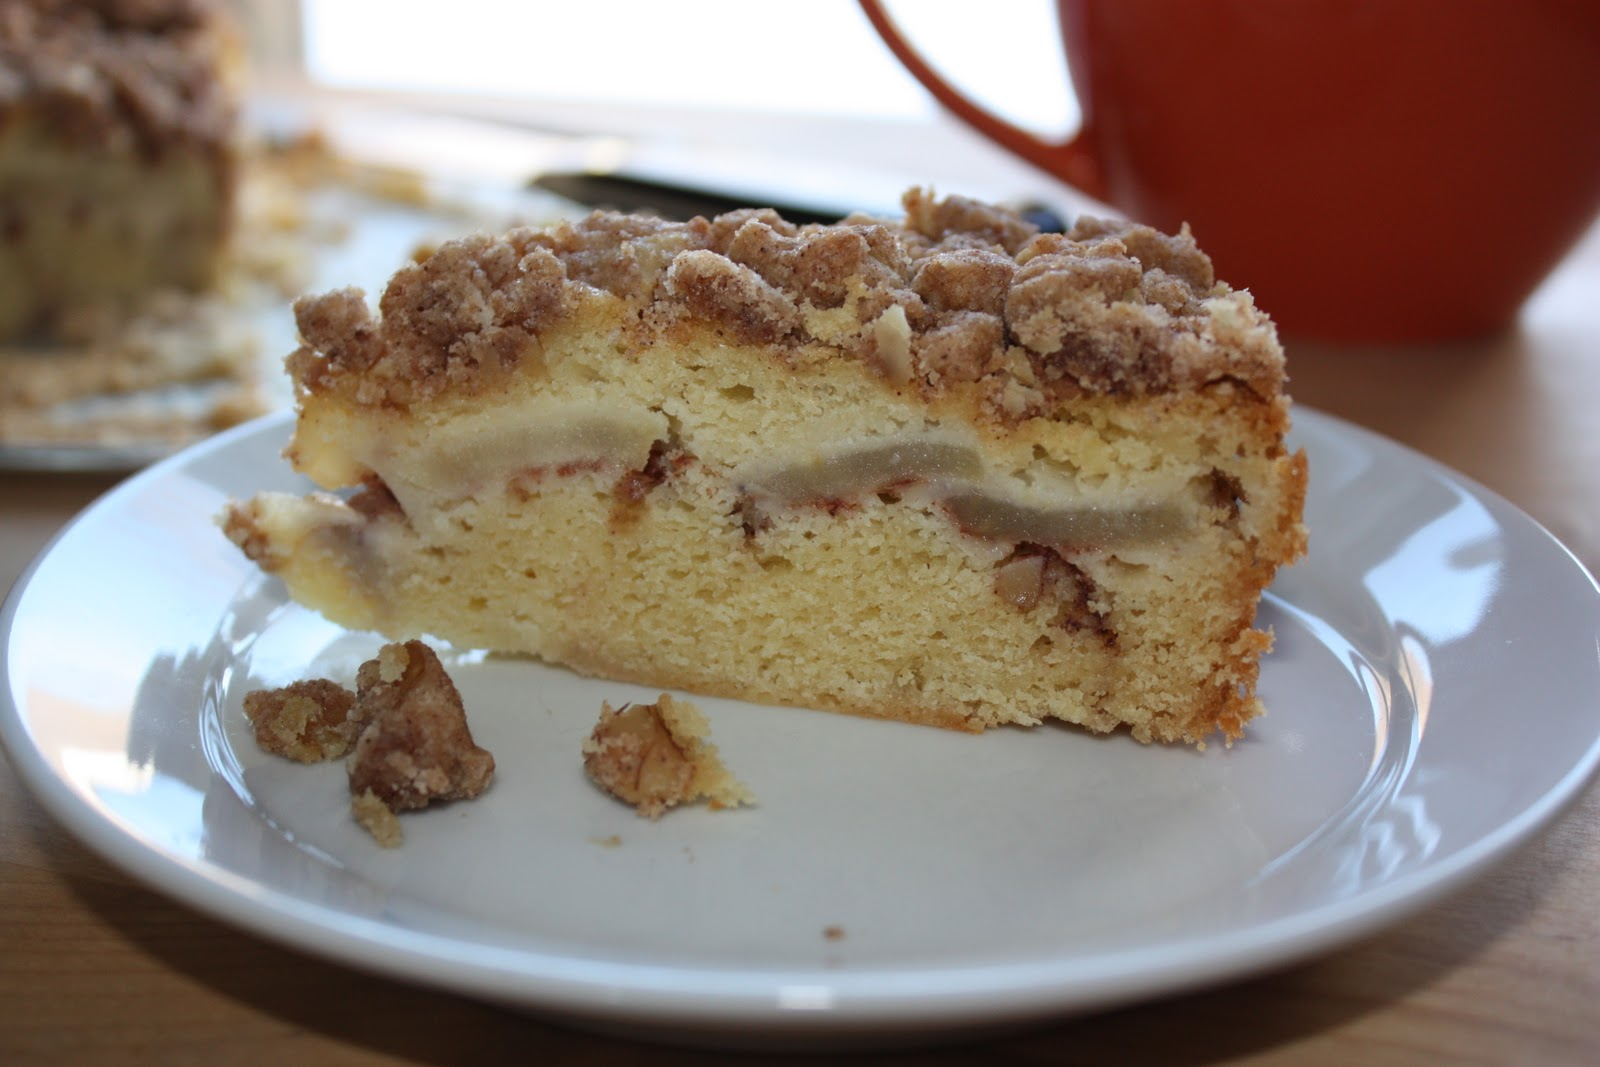 Rose S Apple Sour Cream Crumb Cake